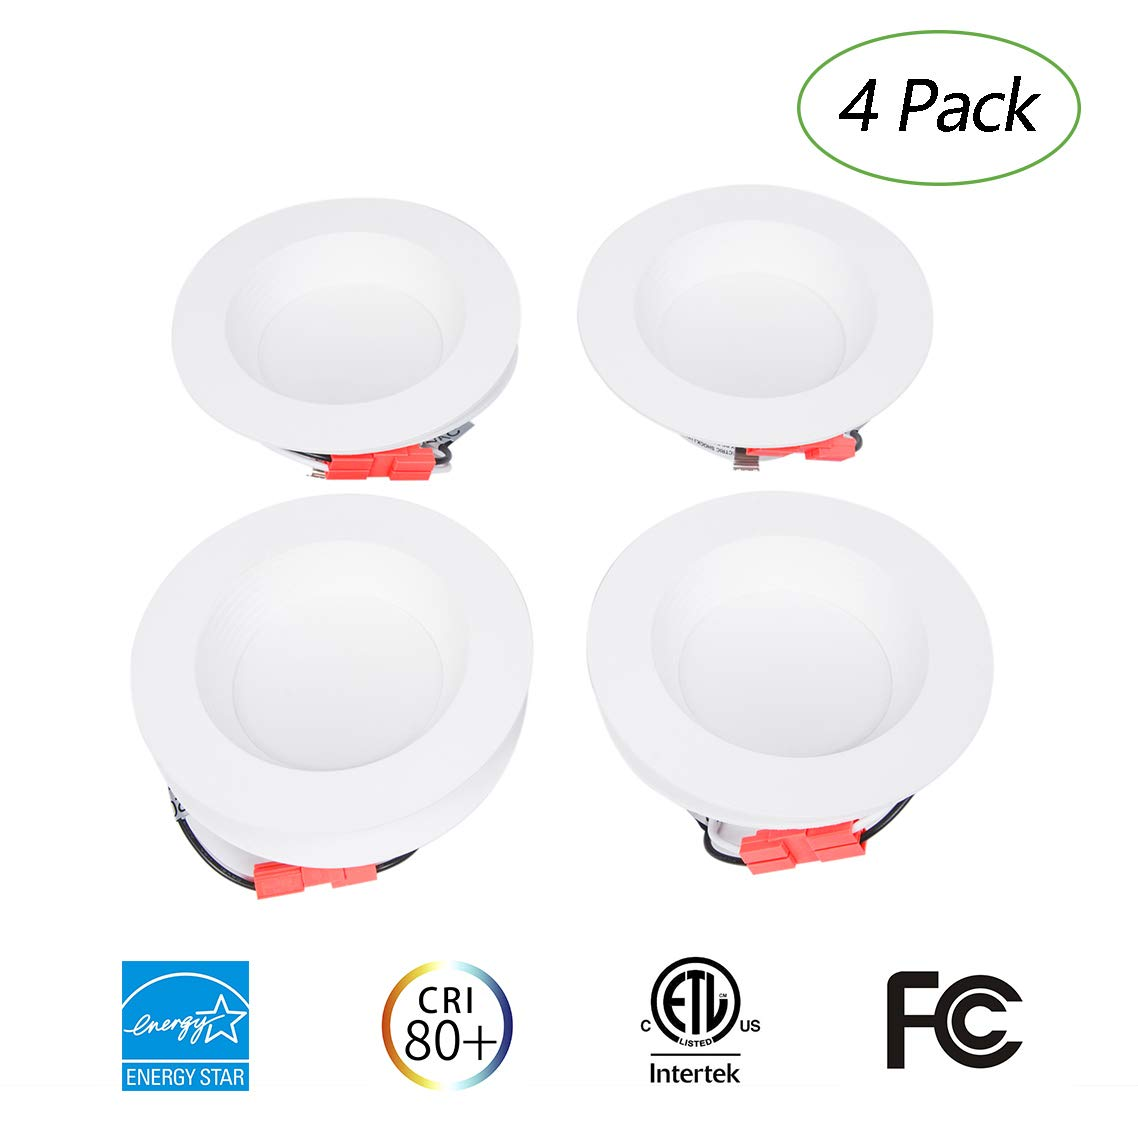 EFFOE 4 inch LED Downlight, 5000K Daylight White, 9W LED Ceiling Light(65W Equivalent),650lm, E26 Base, 100° Beam Angle, CRI90, Decorative Recessed Lighting Fixture, Dimmable, 4 Pack